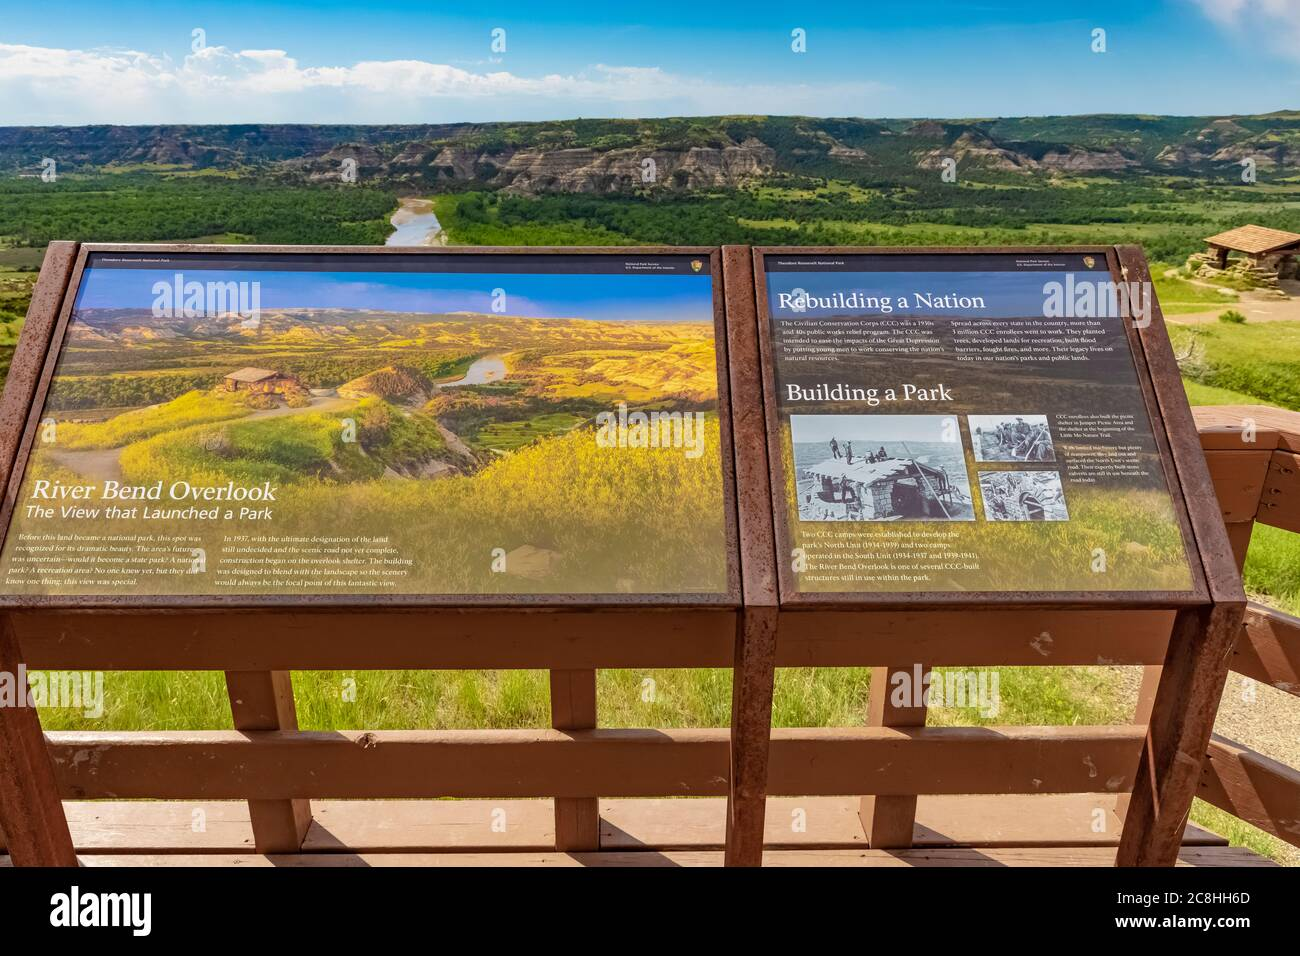 Interpretive sign for River Bend Overlook, built by the CCC in the 1930s, in Theodore Roosevelt National Park, North Unit, in North Dakota, USA Stock Photo